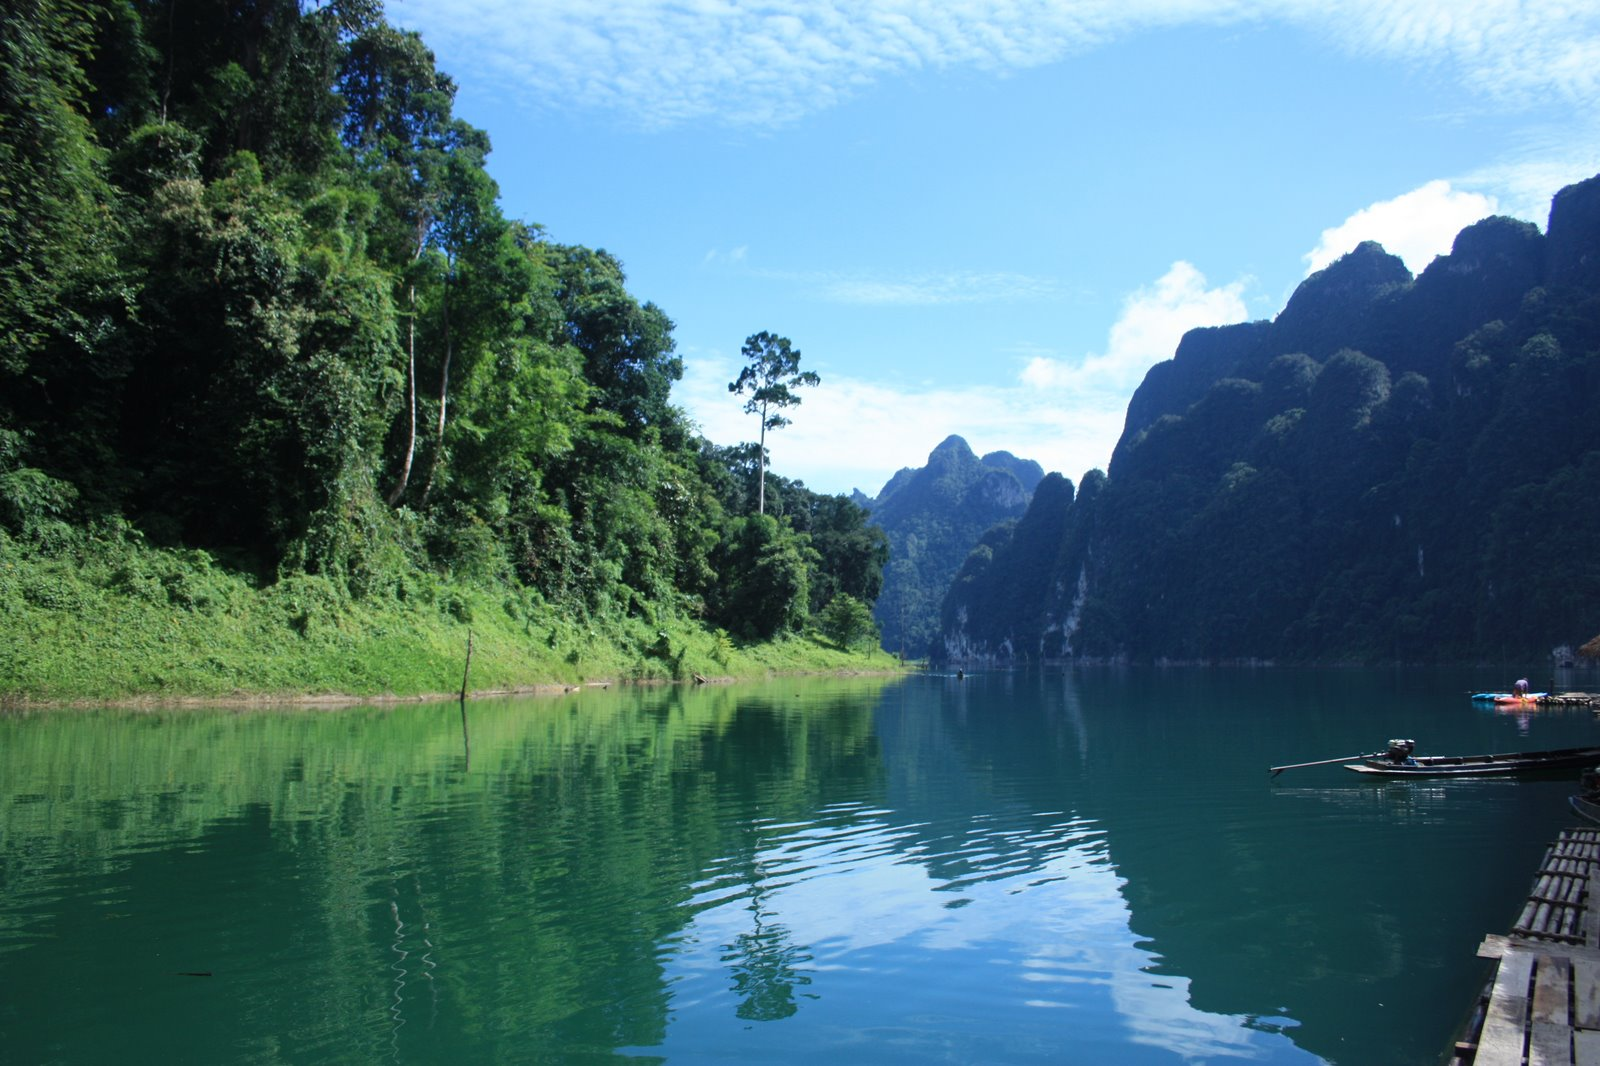 Khao Sok (Suratthani) Thailand  city photos gallery : ... of Pride: Khao Sok national park, Suratthani, Thailand Photo 5 of 6